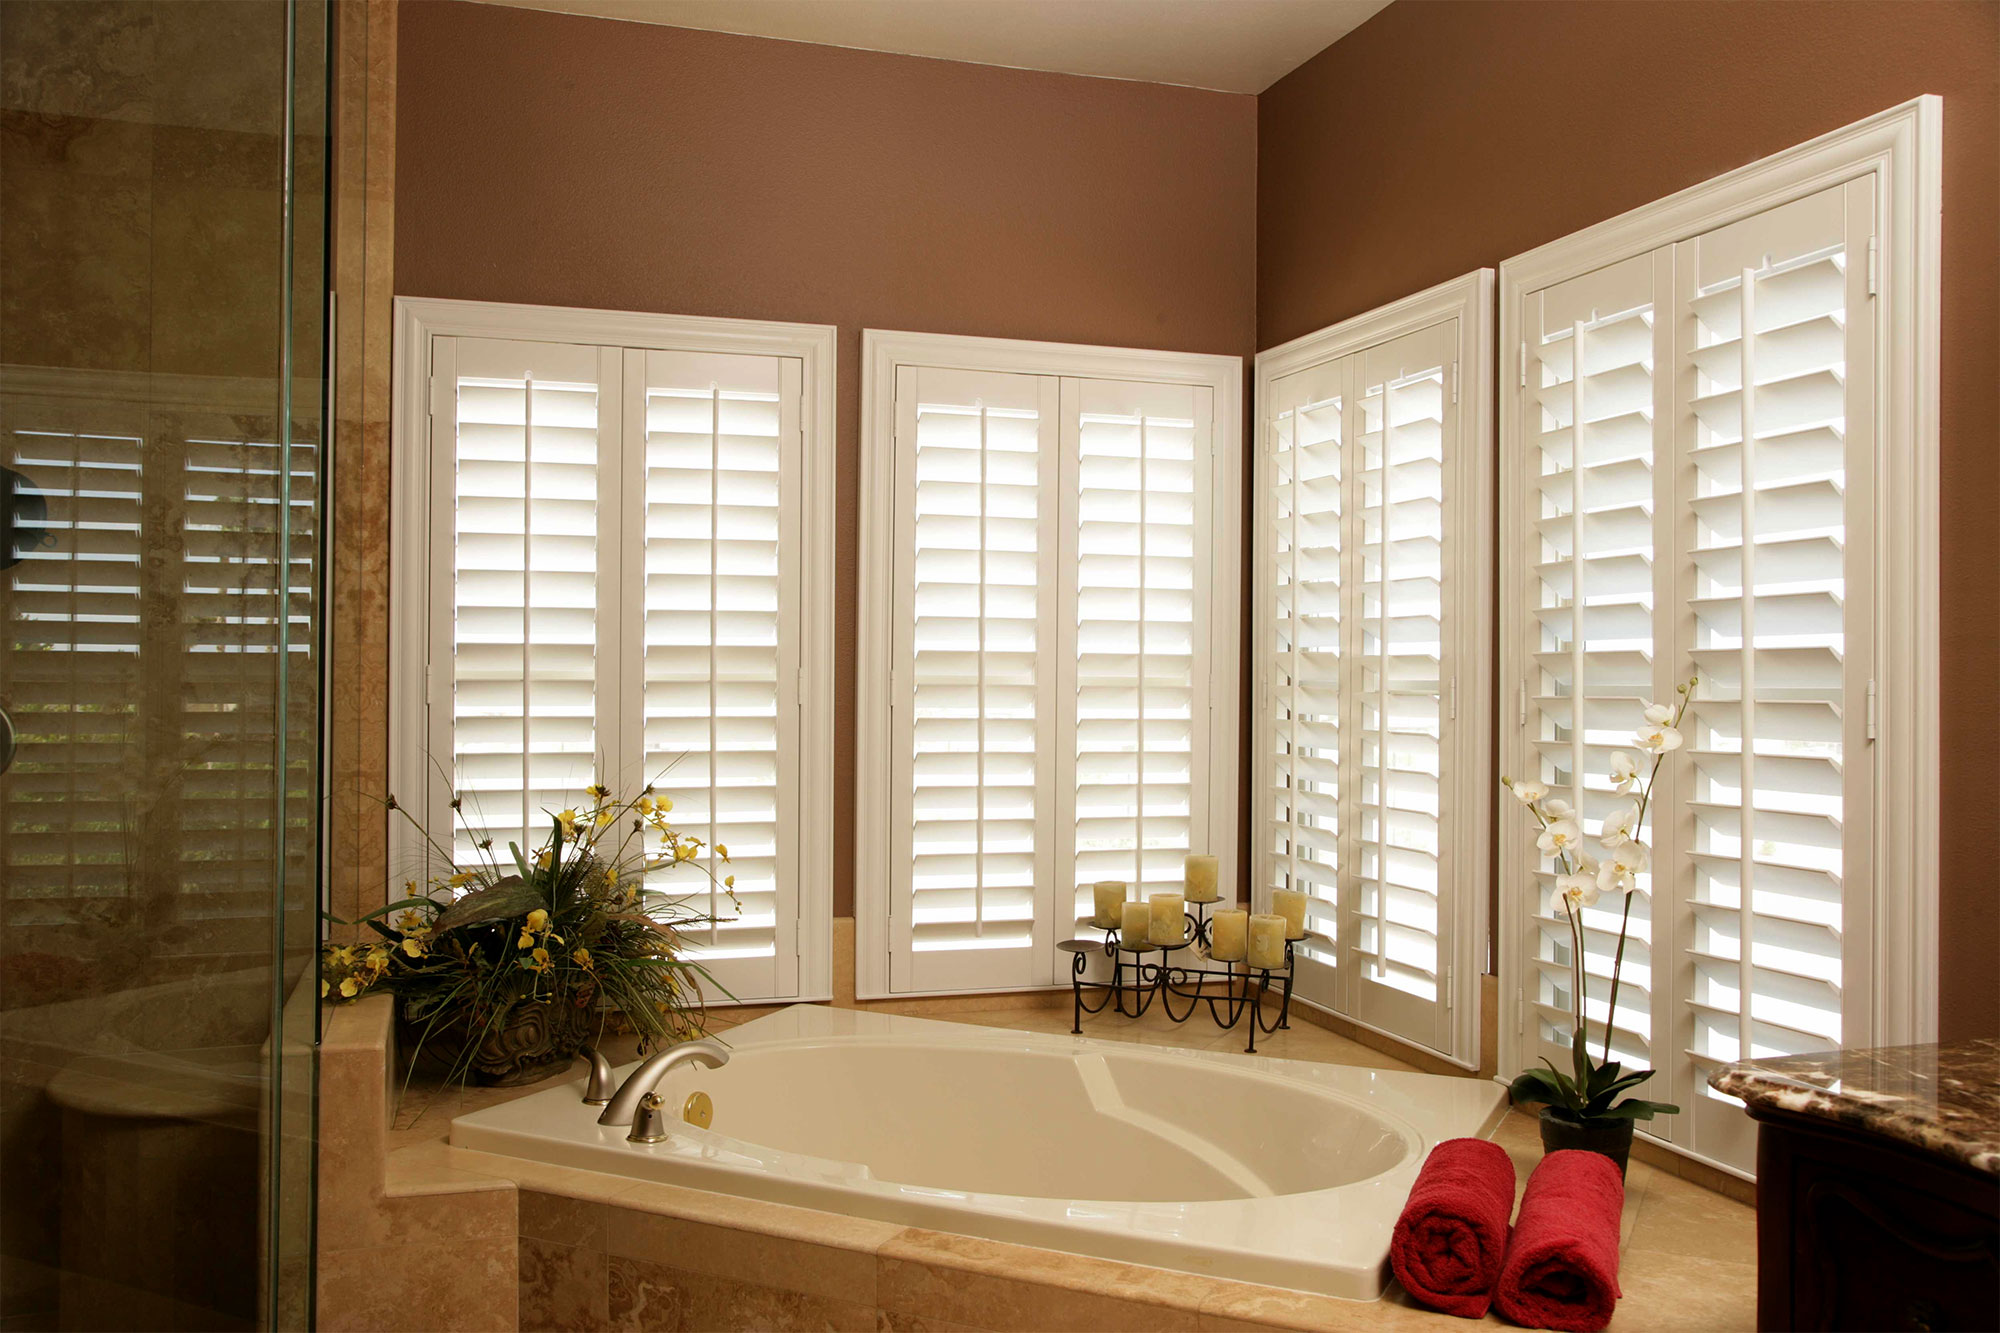 ShutterUp.com - The Plantation Shutter Experts